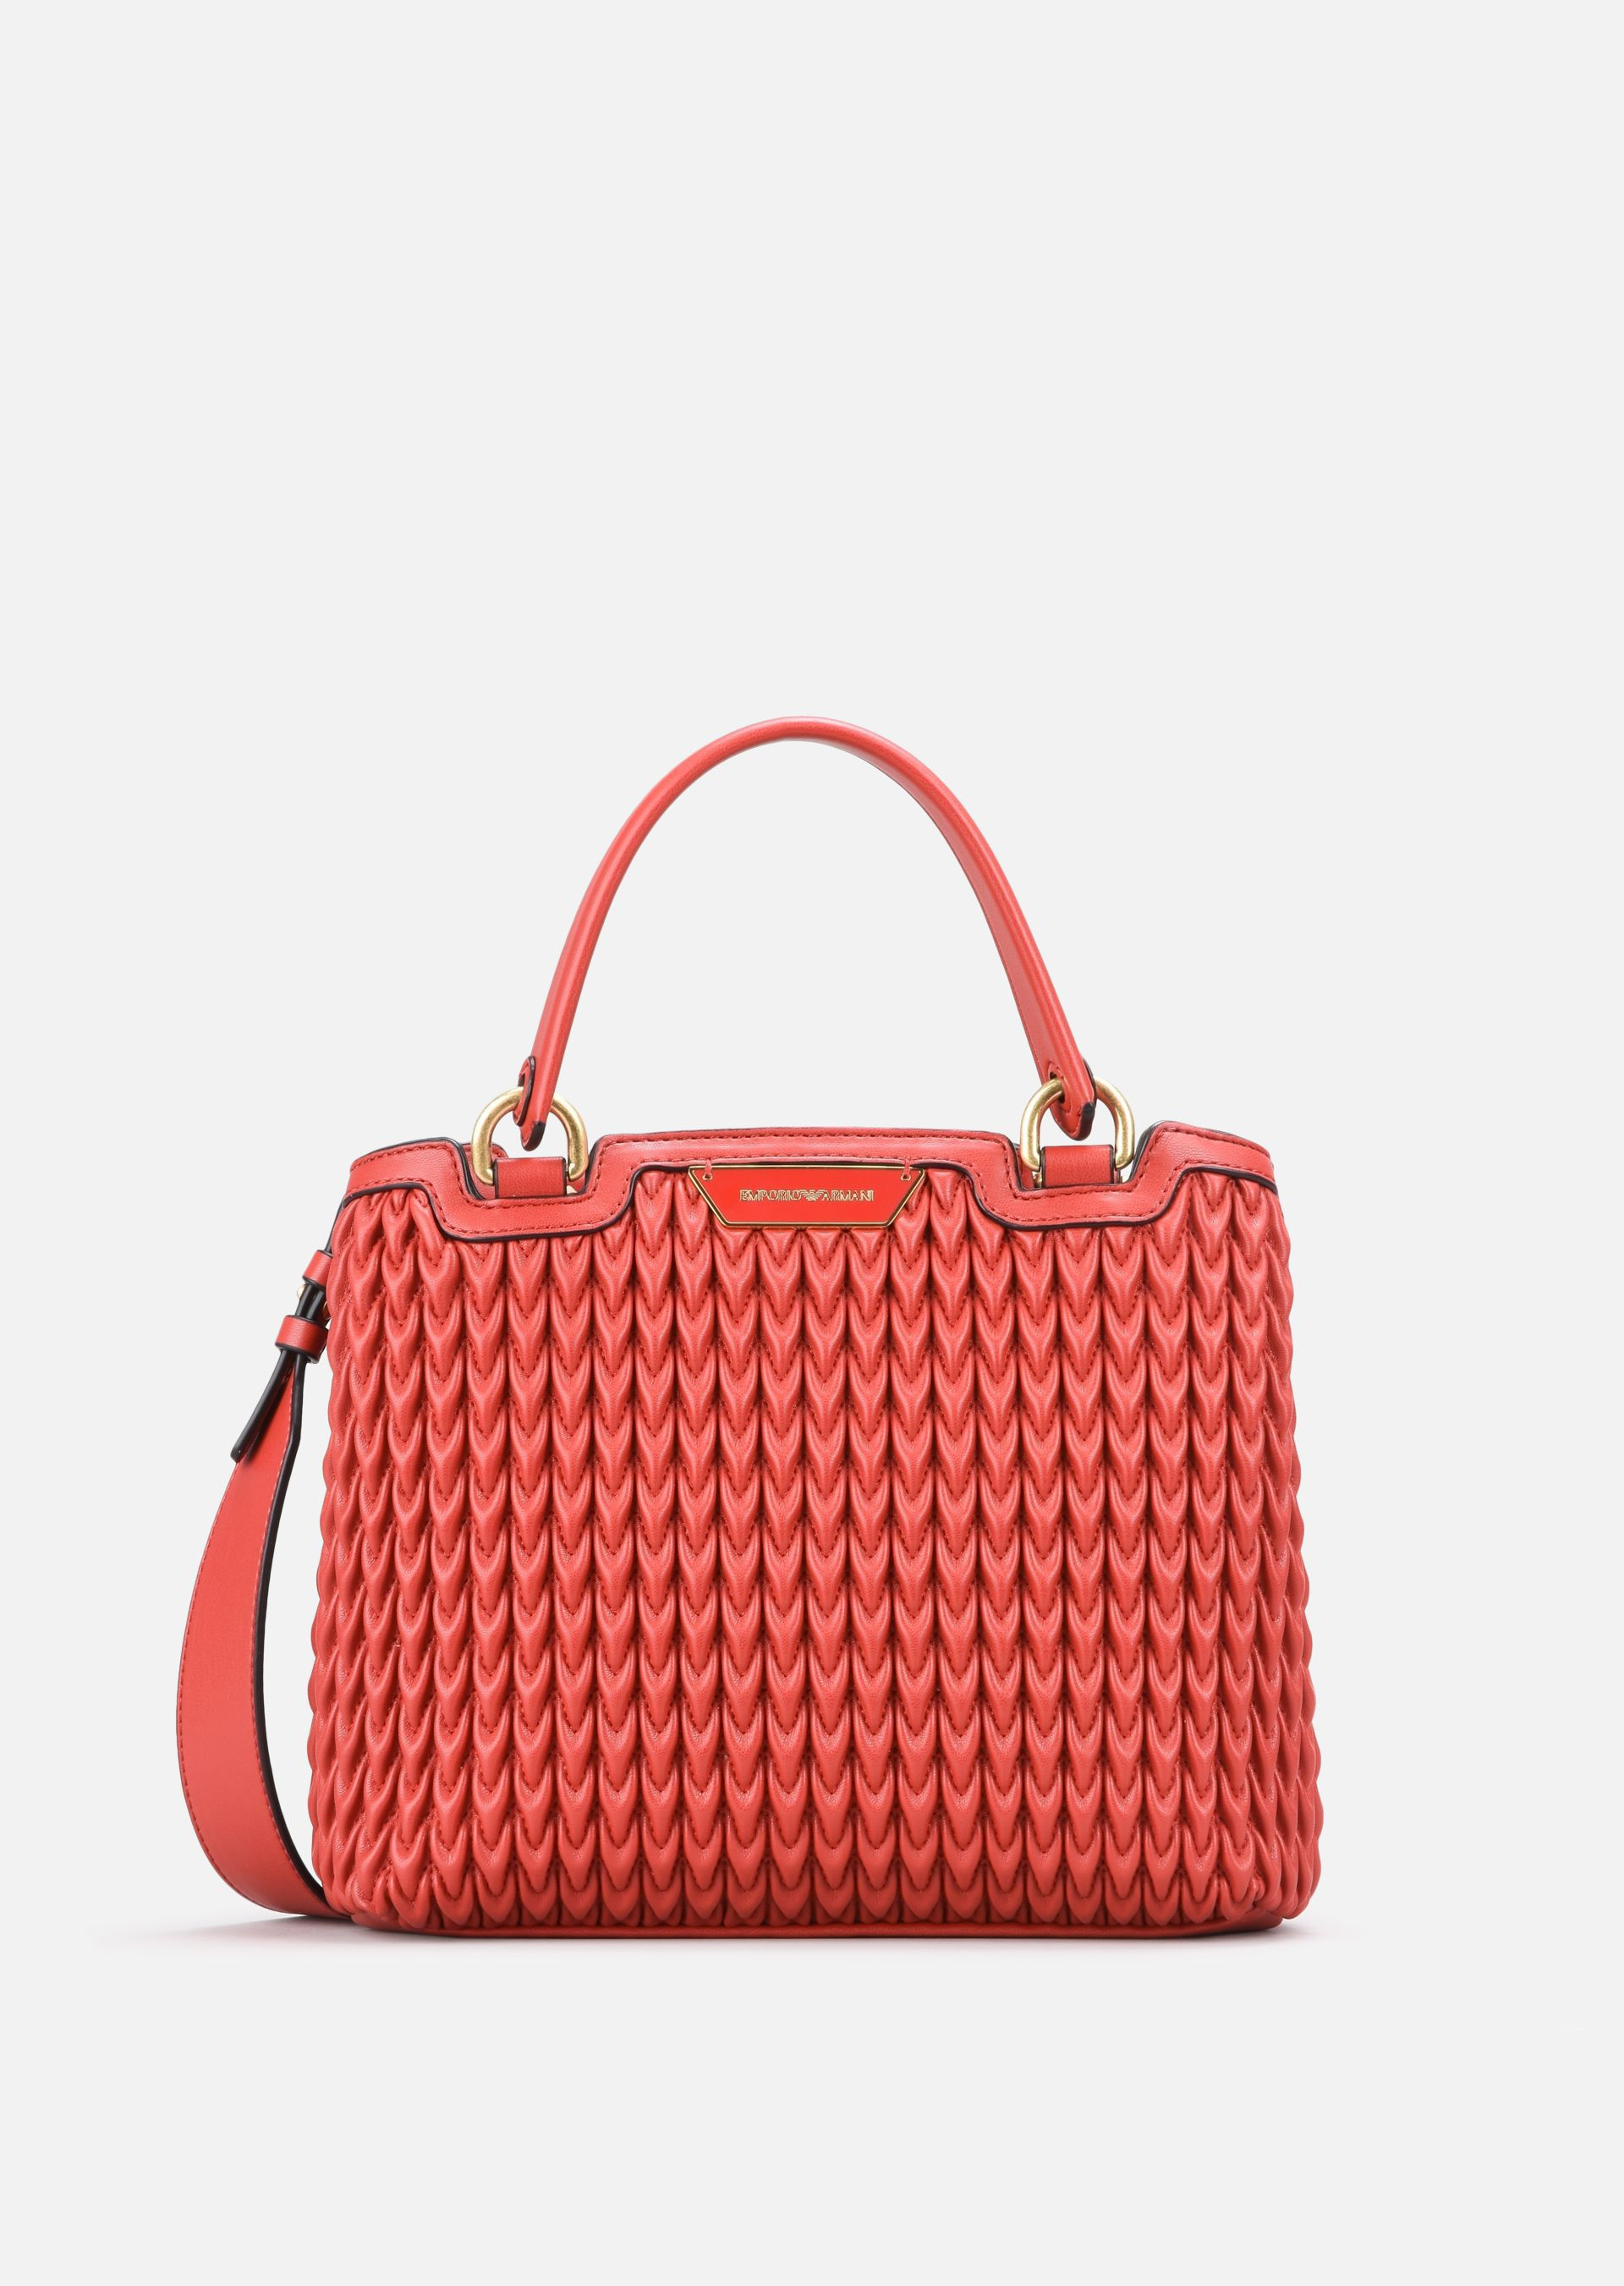 official-store-emporio-armani-bags-shoppers-on-armani